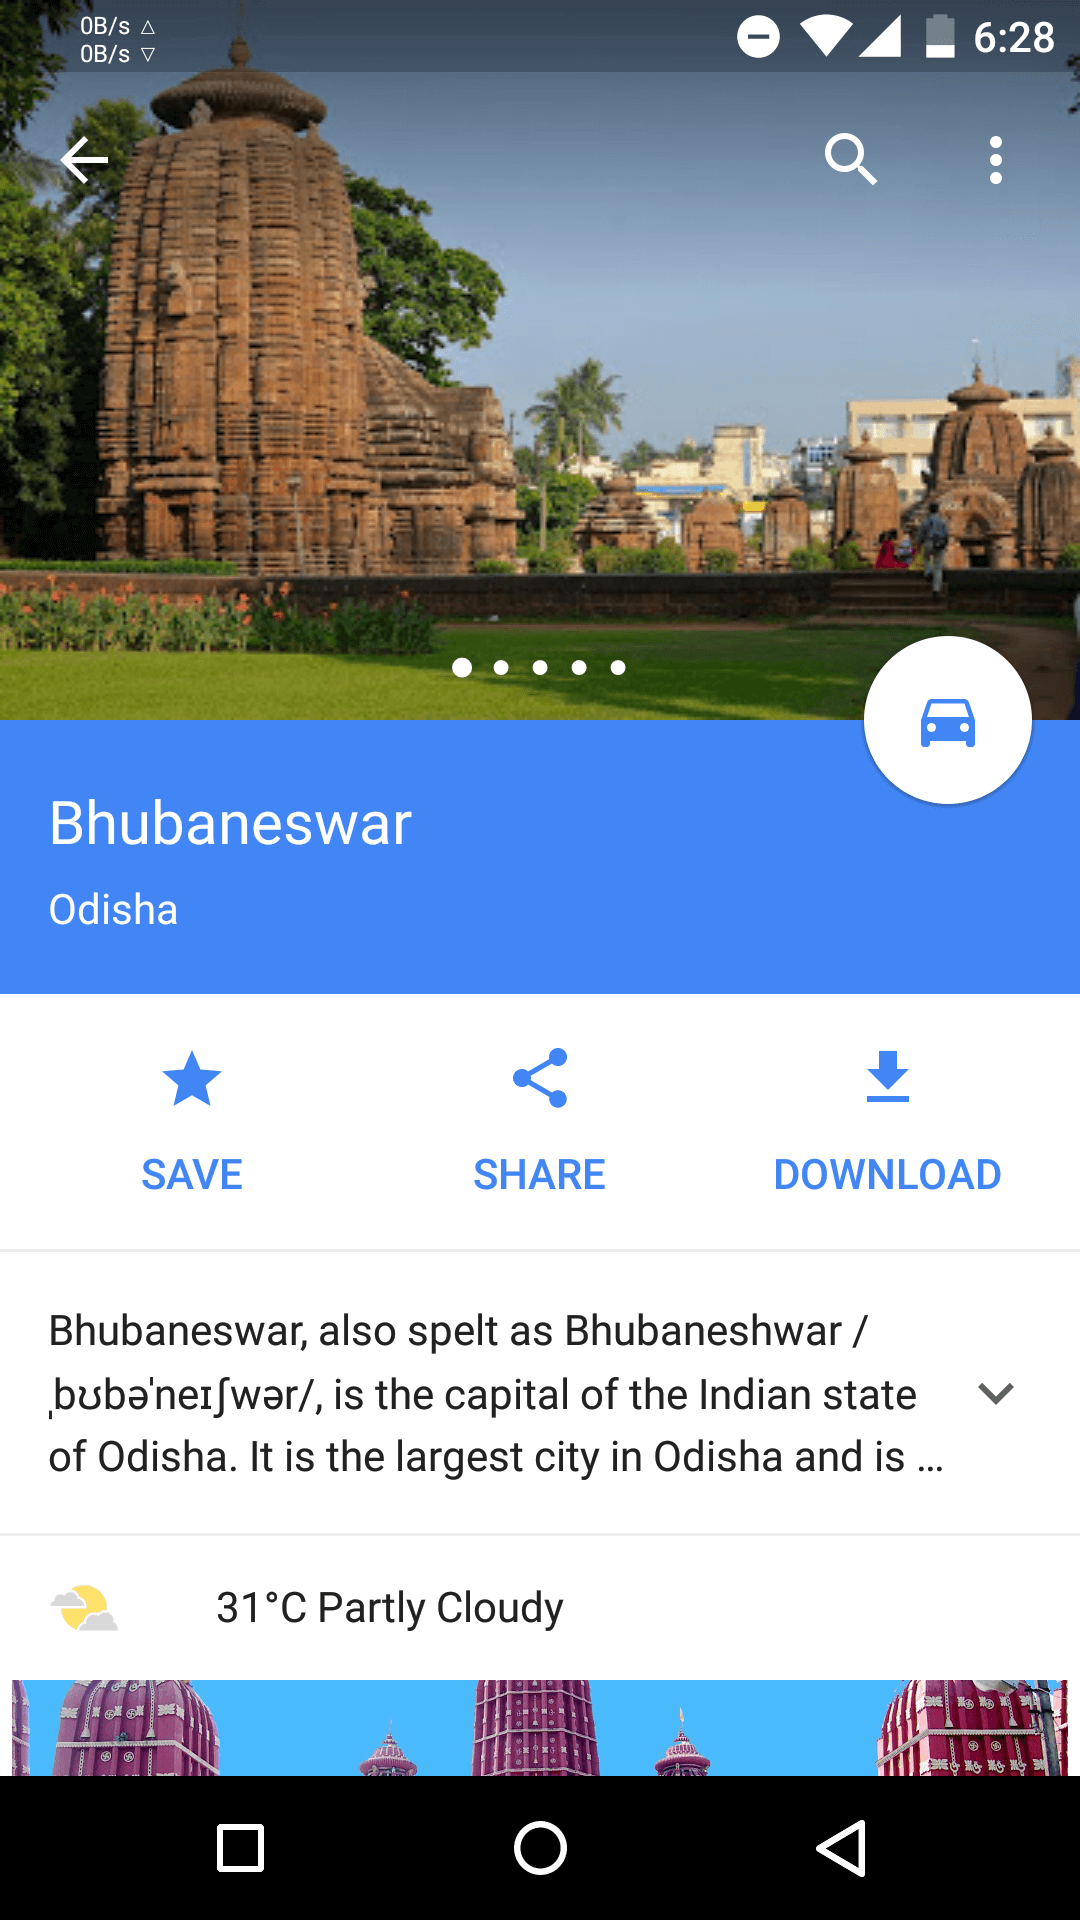 Save for offline view in google maps